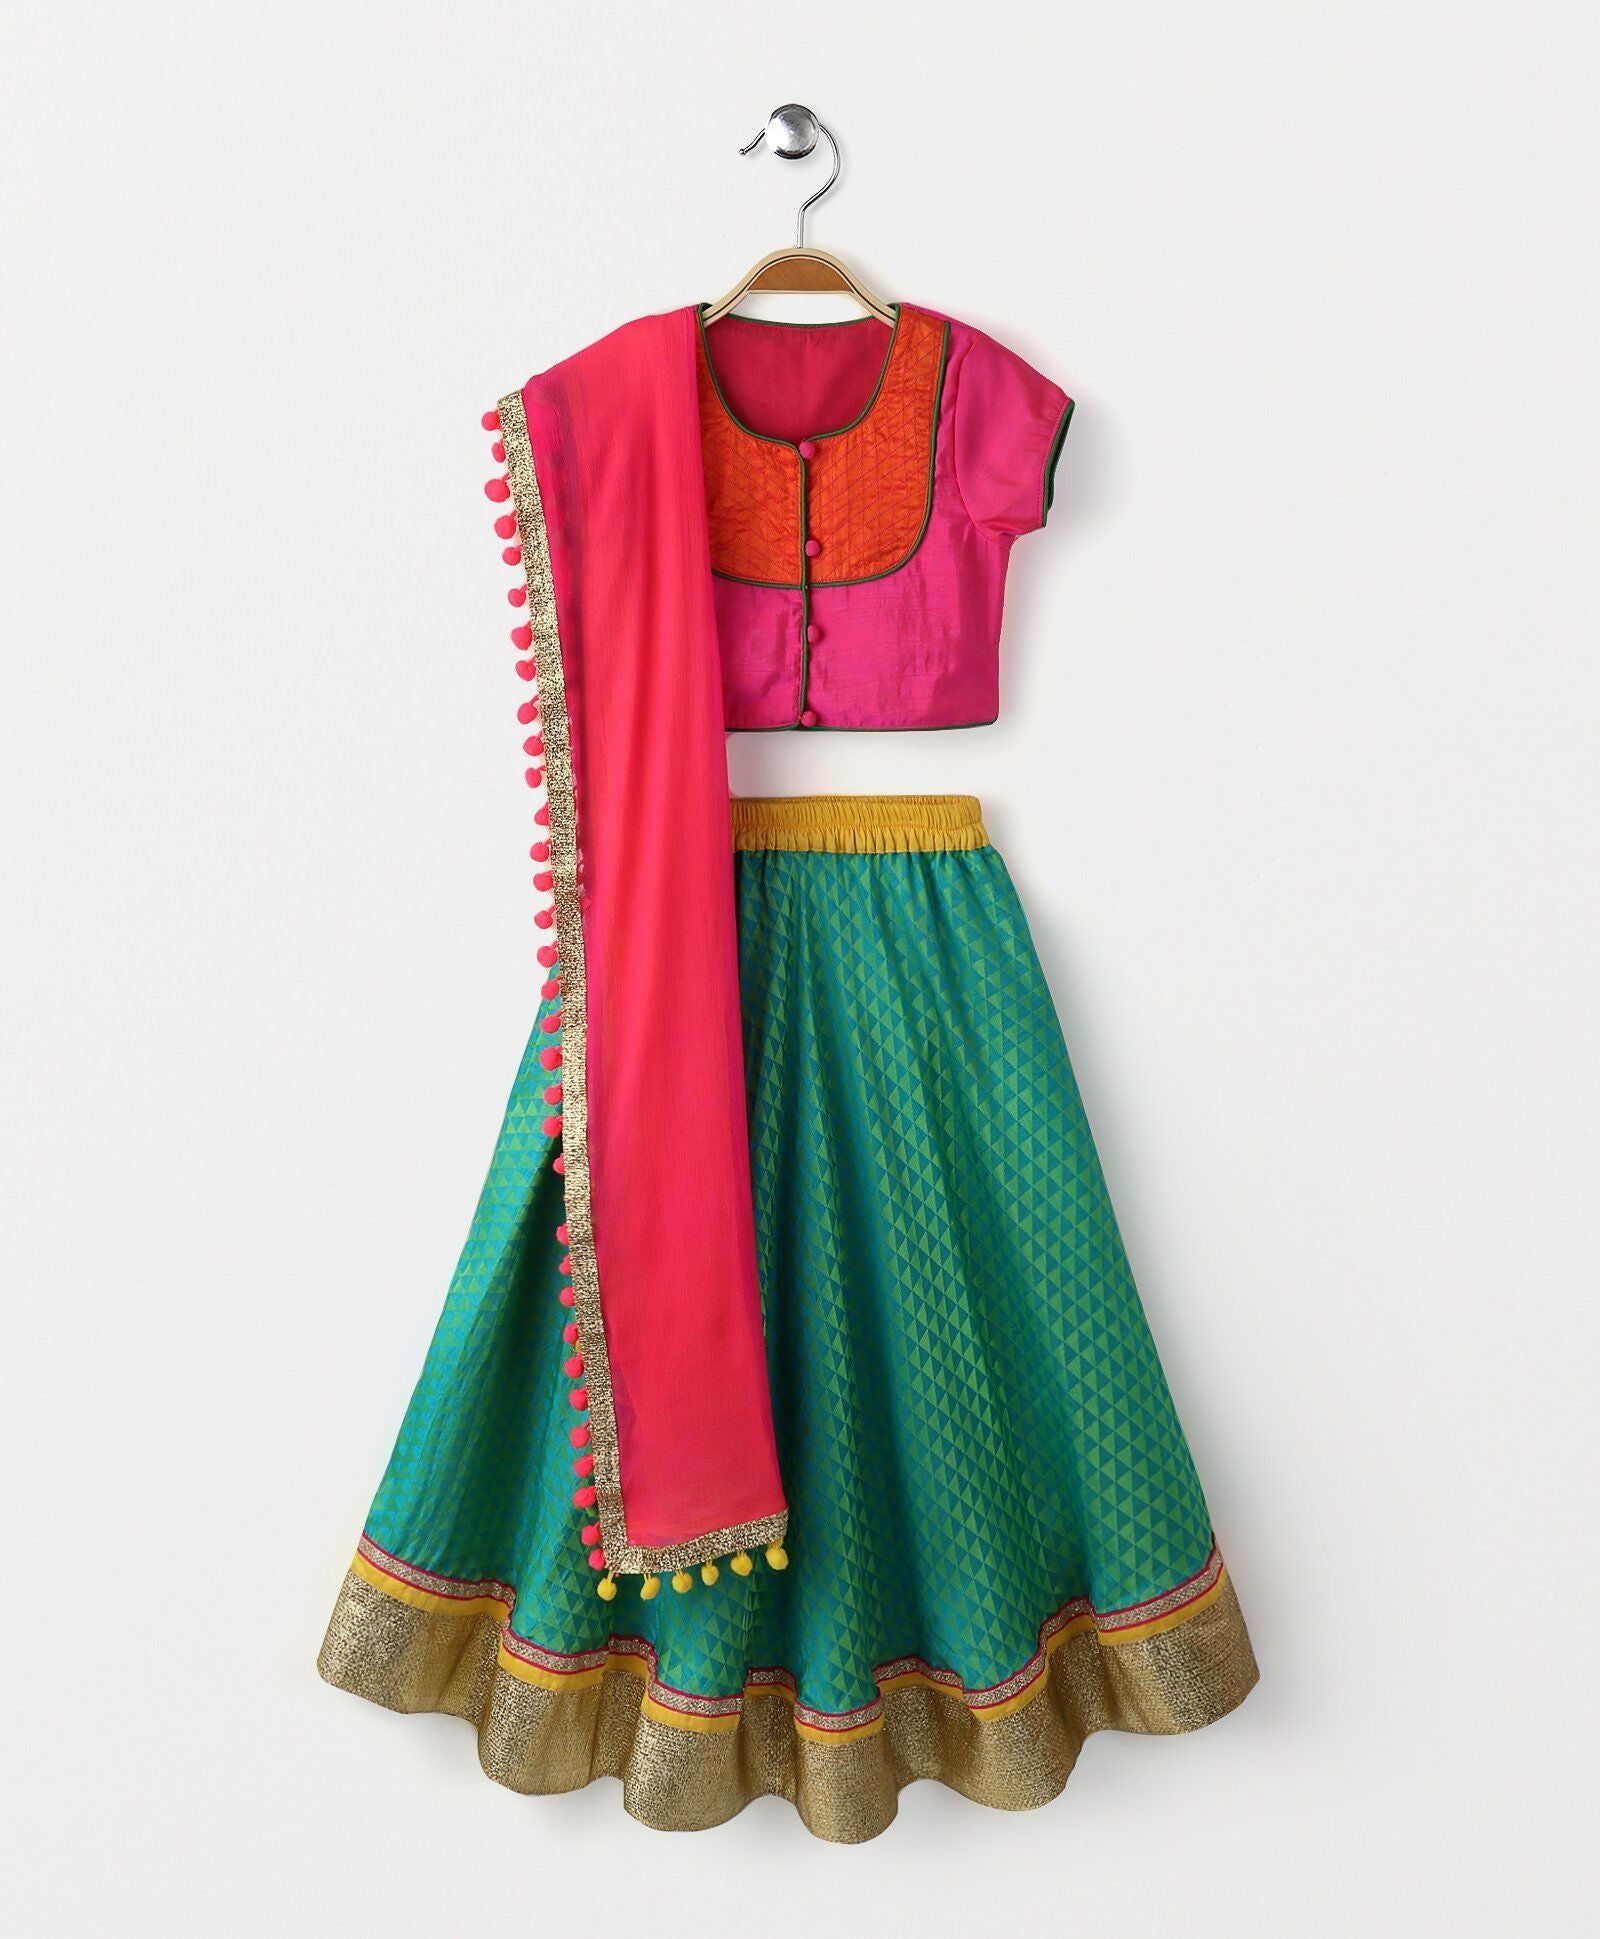 Green pink navratri garbha bollywood crop top Lehenga Choli Indian Ethnic bright colorful festive ethnic kid children